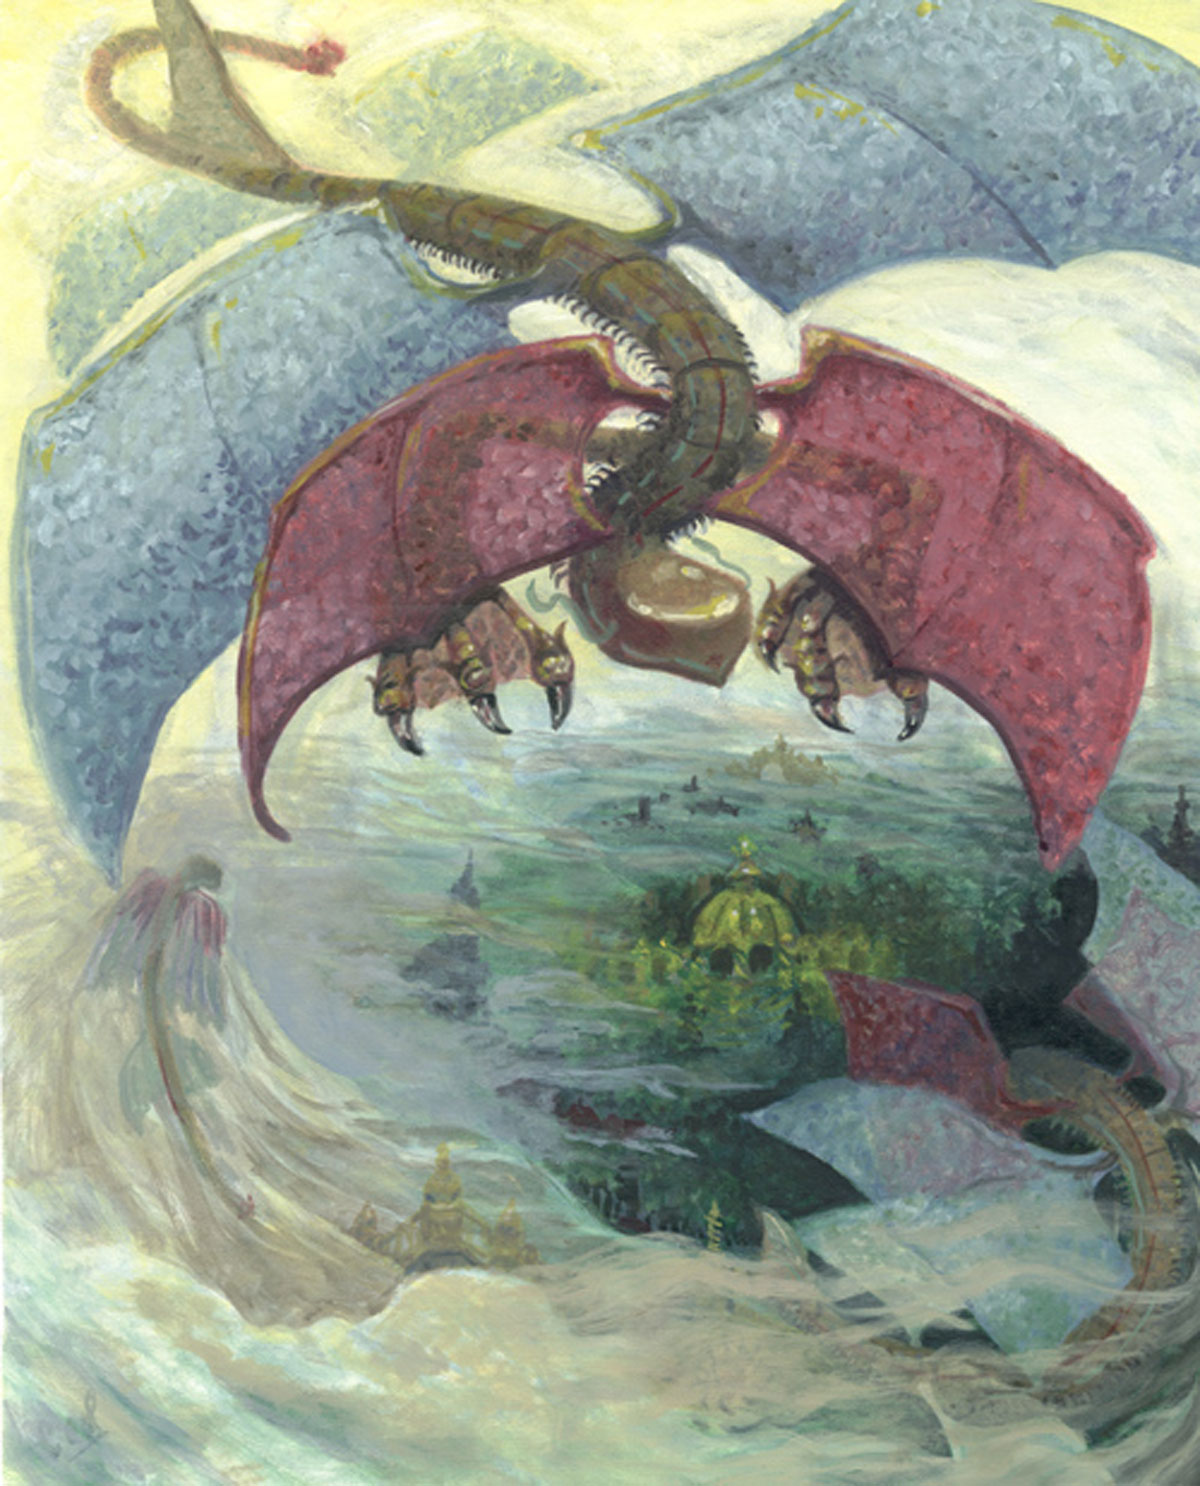 The Auran Dragon